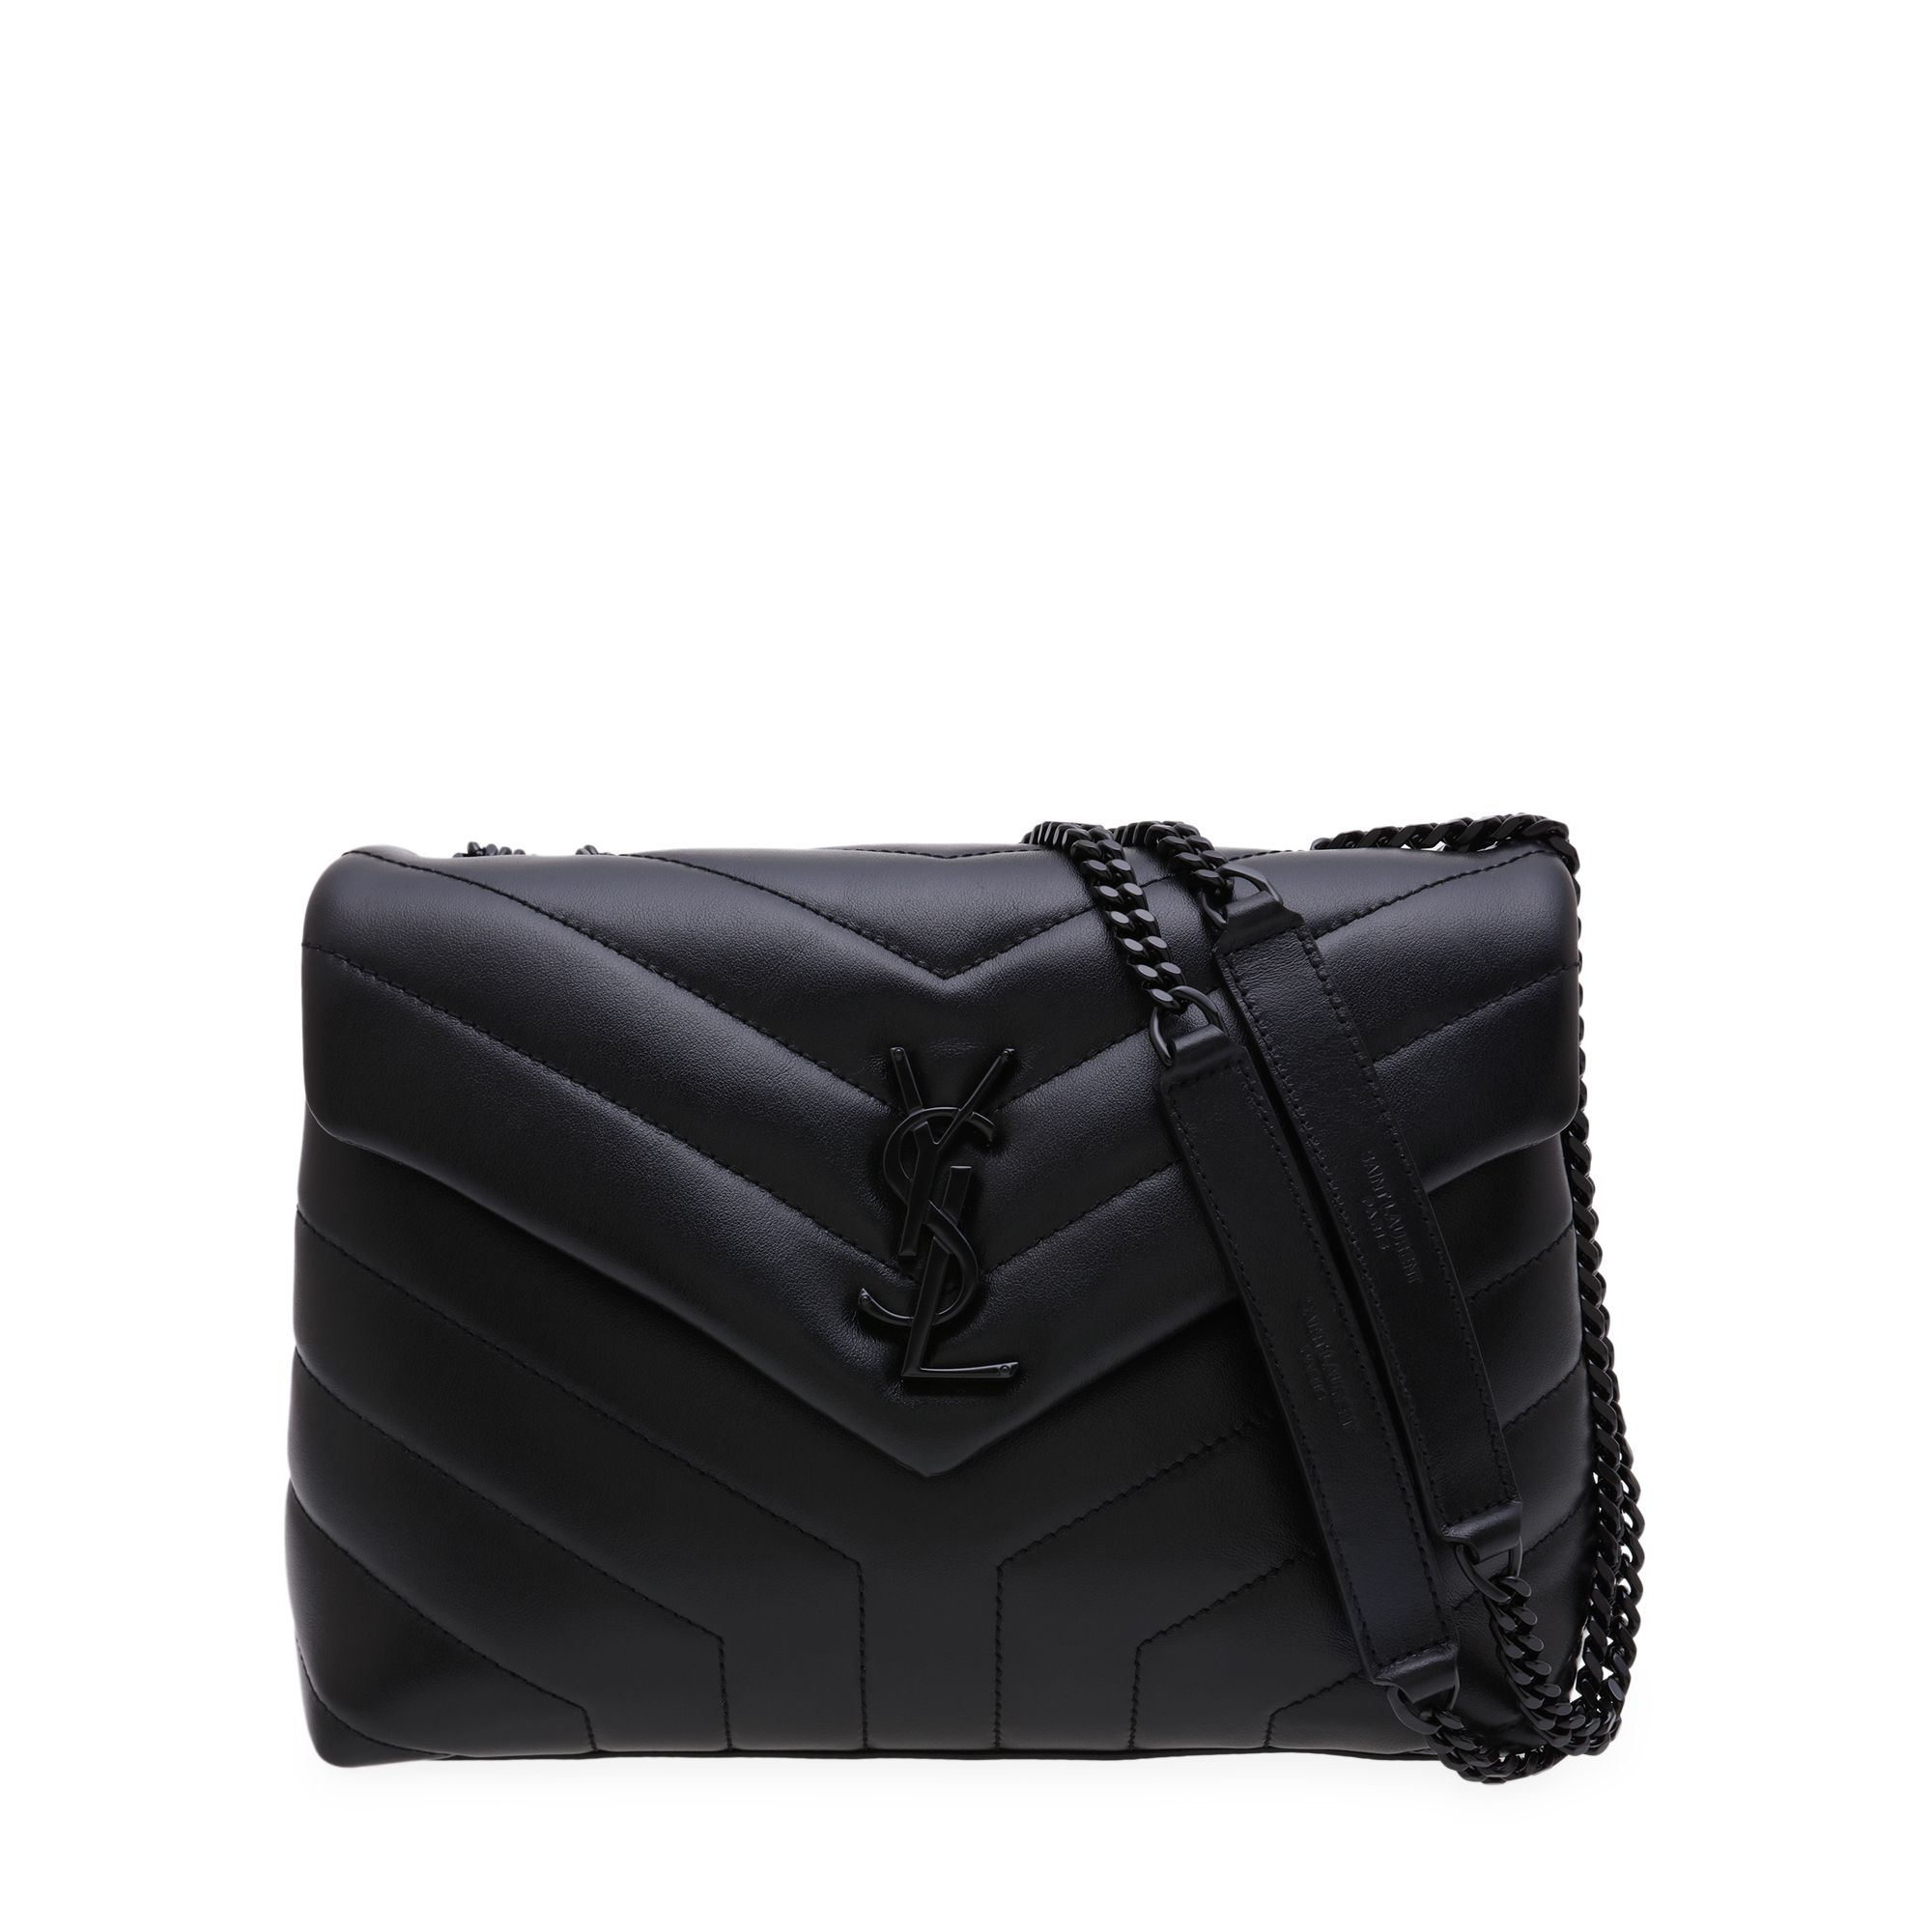 Loulou leather bag